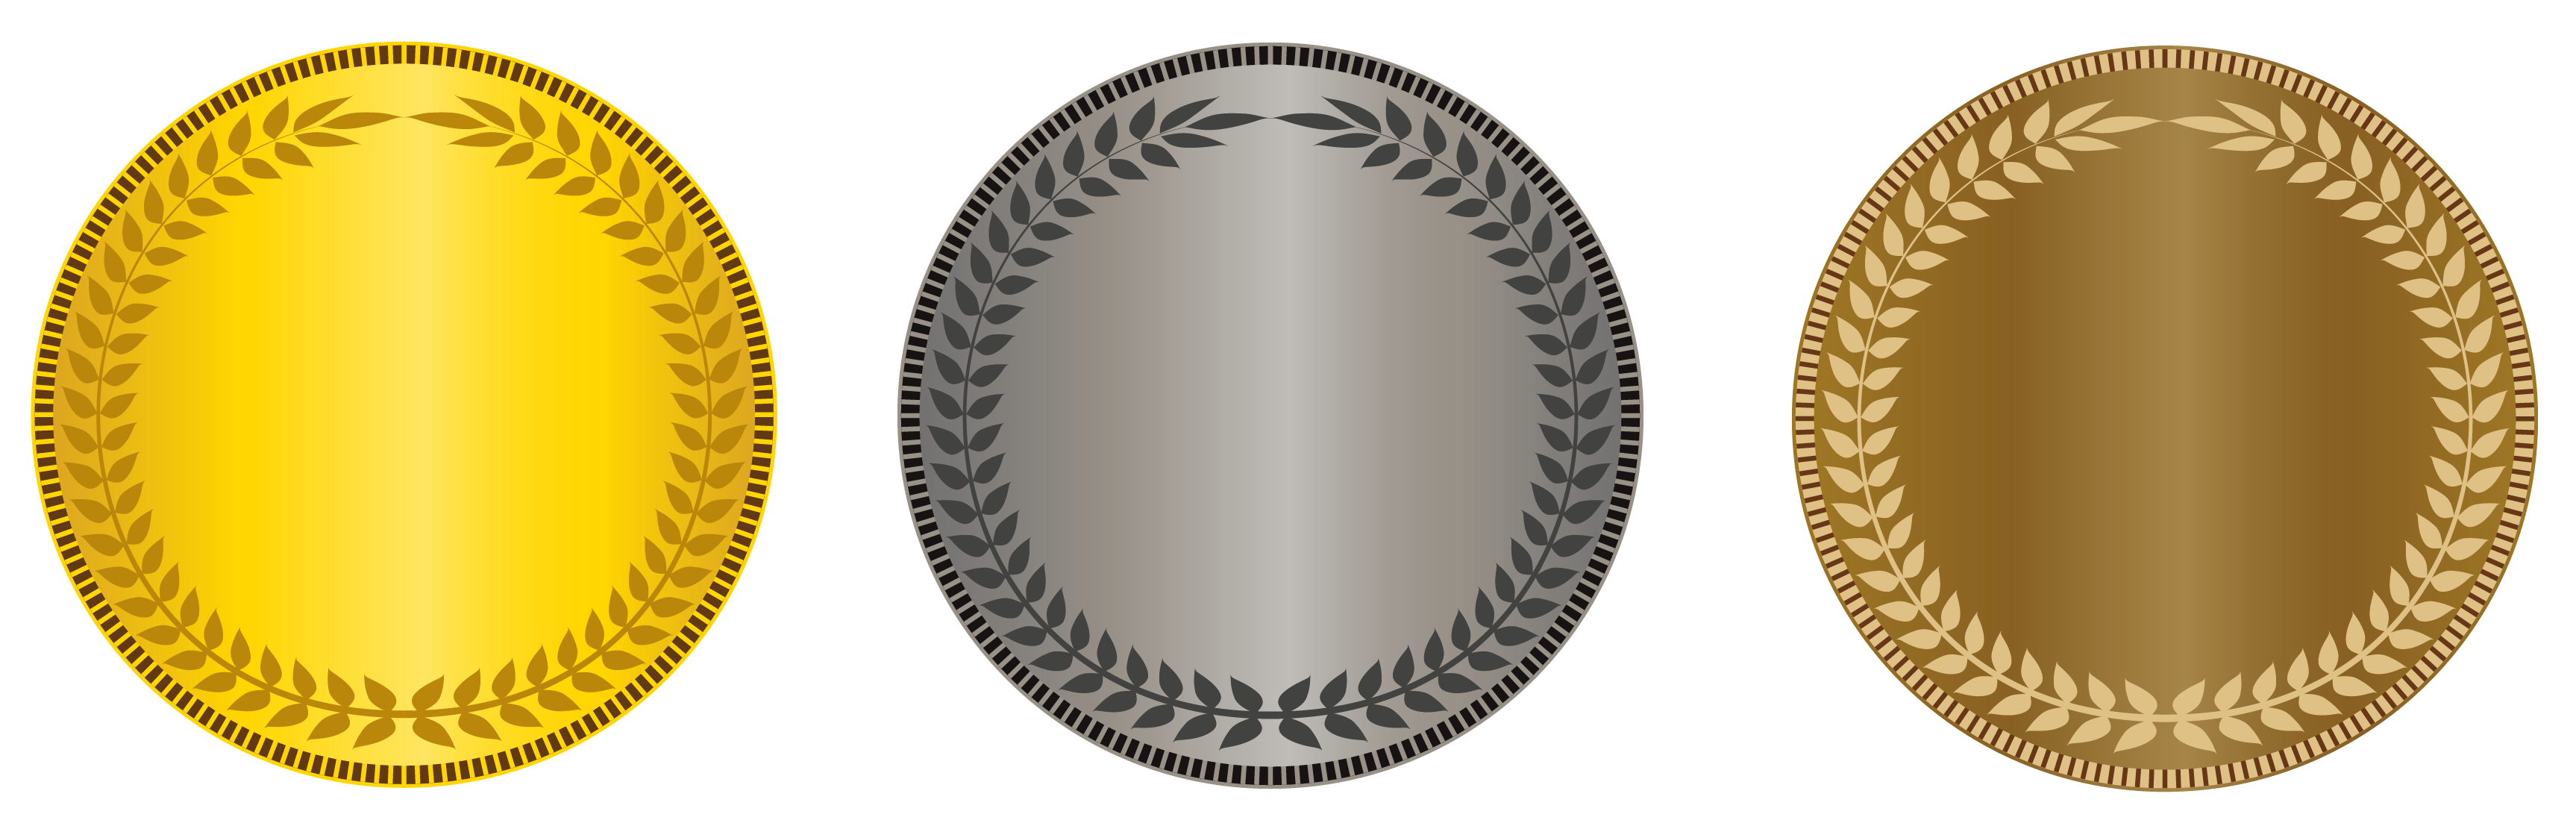 Transparent bronze medals png. Gold clipart gold silver image royalty free download